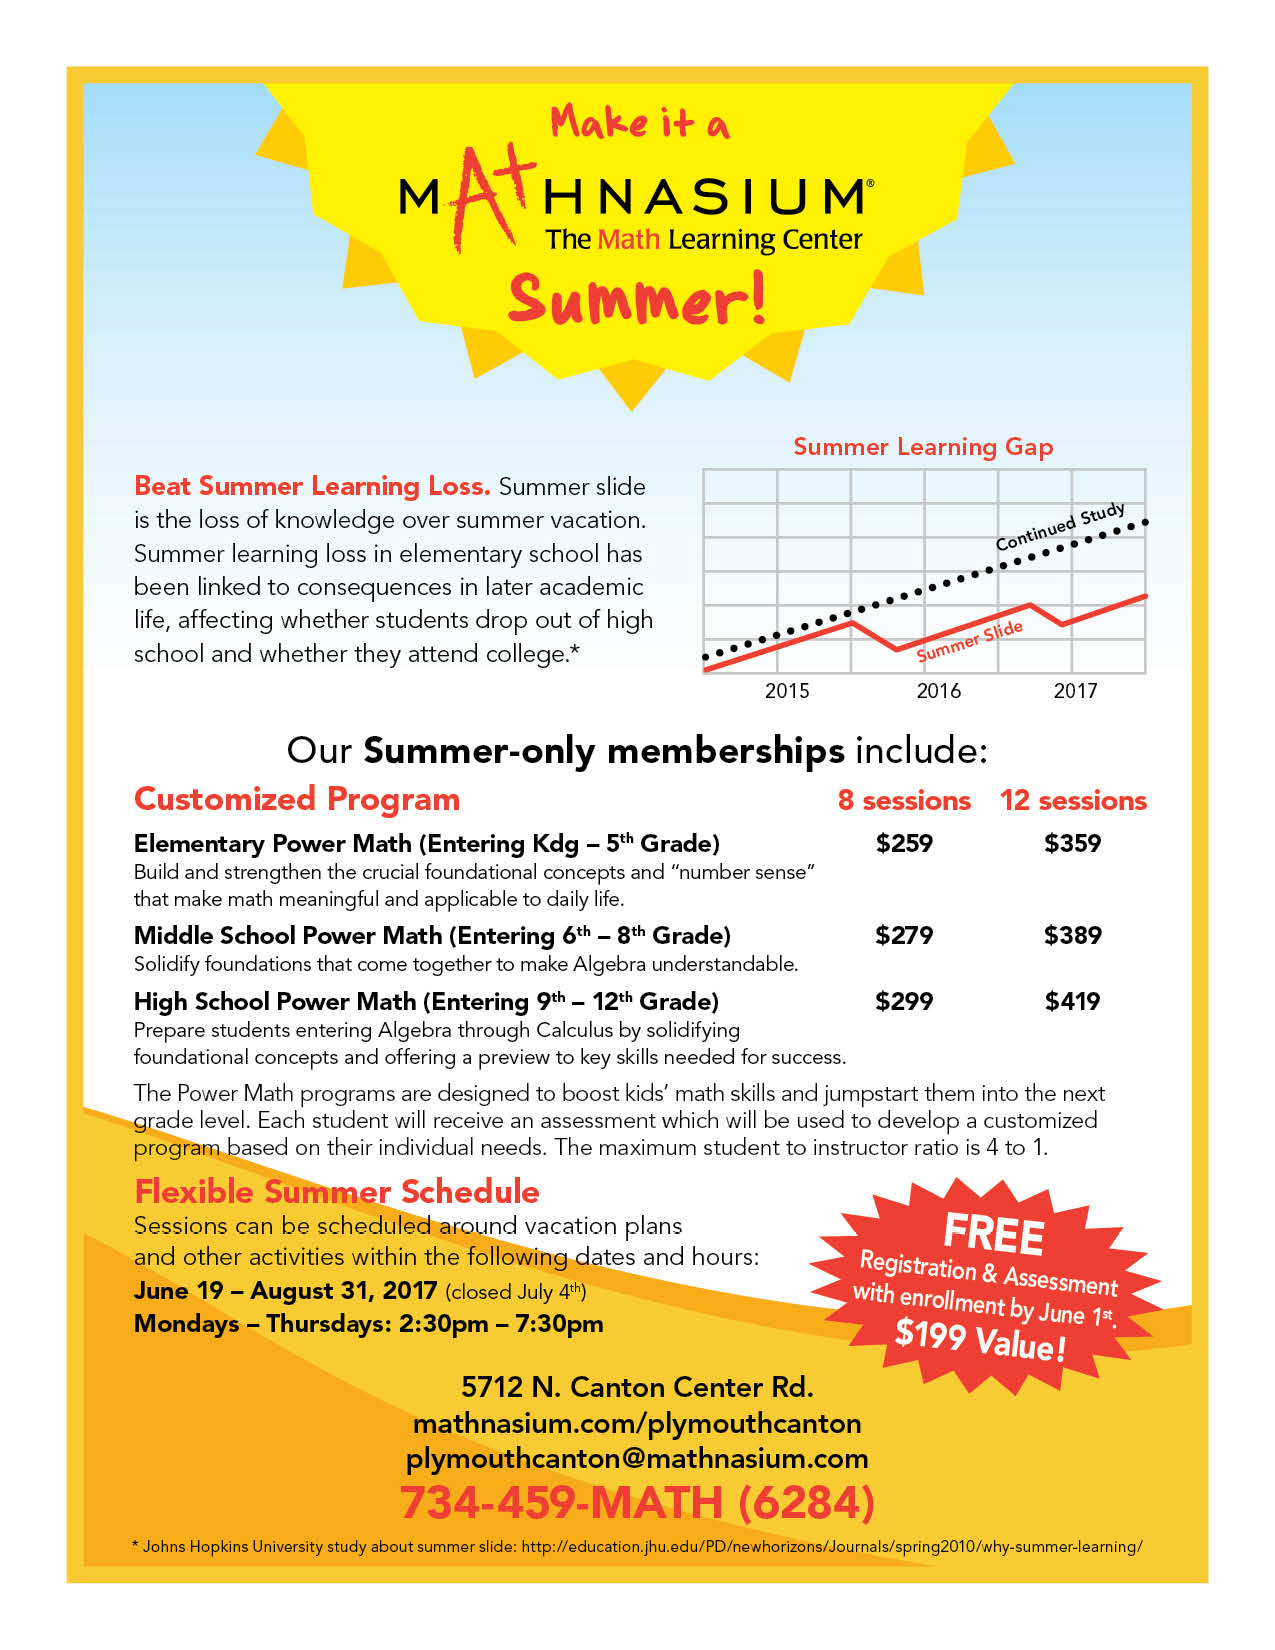 Math summer camp in Centreville VA and Manassas, VA